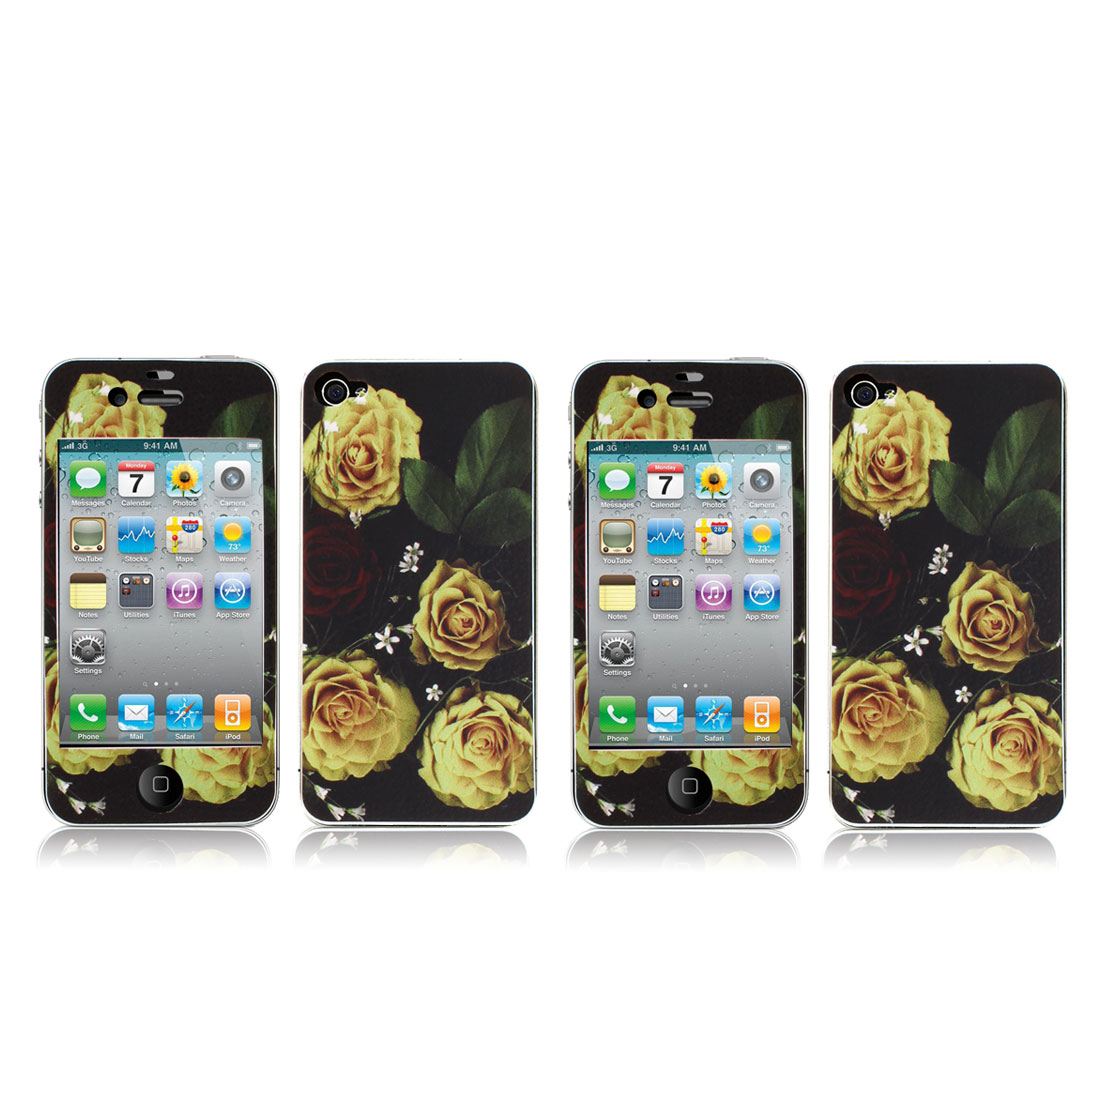 Yellow Rose Vinyl Front Back Decal Sticker Film Guard 2 Pcs for iPhone 4 4G 4S 4GS